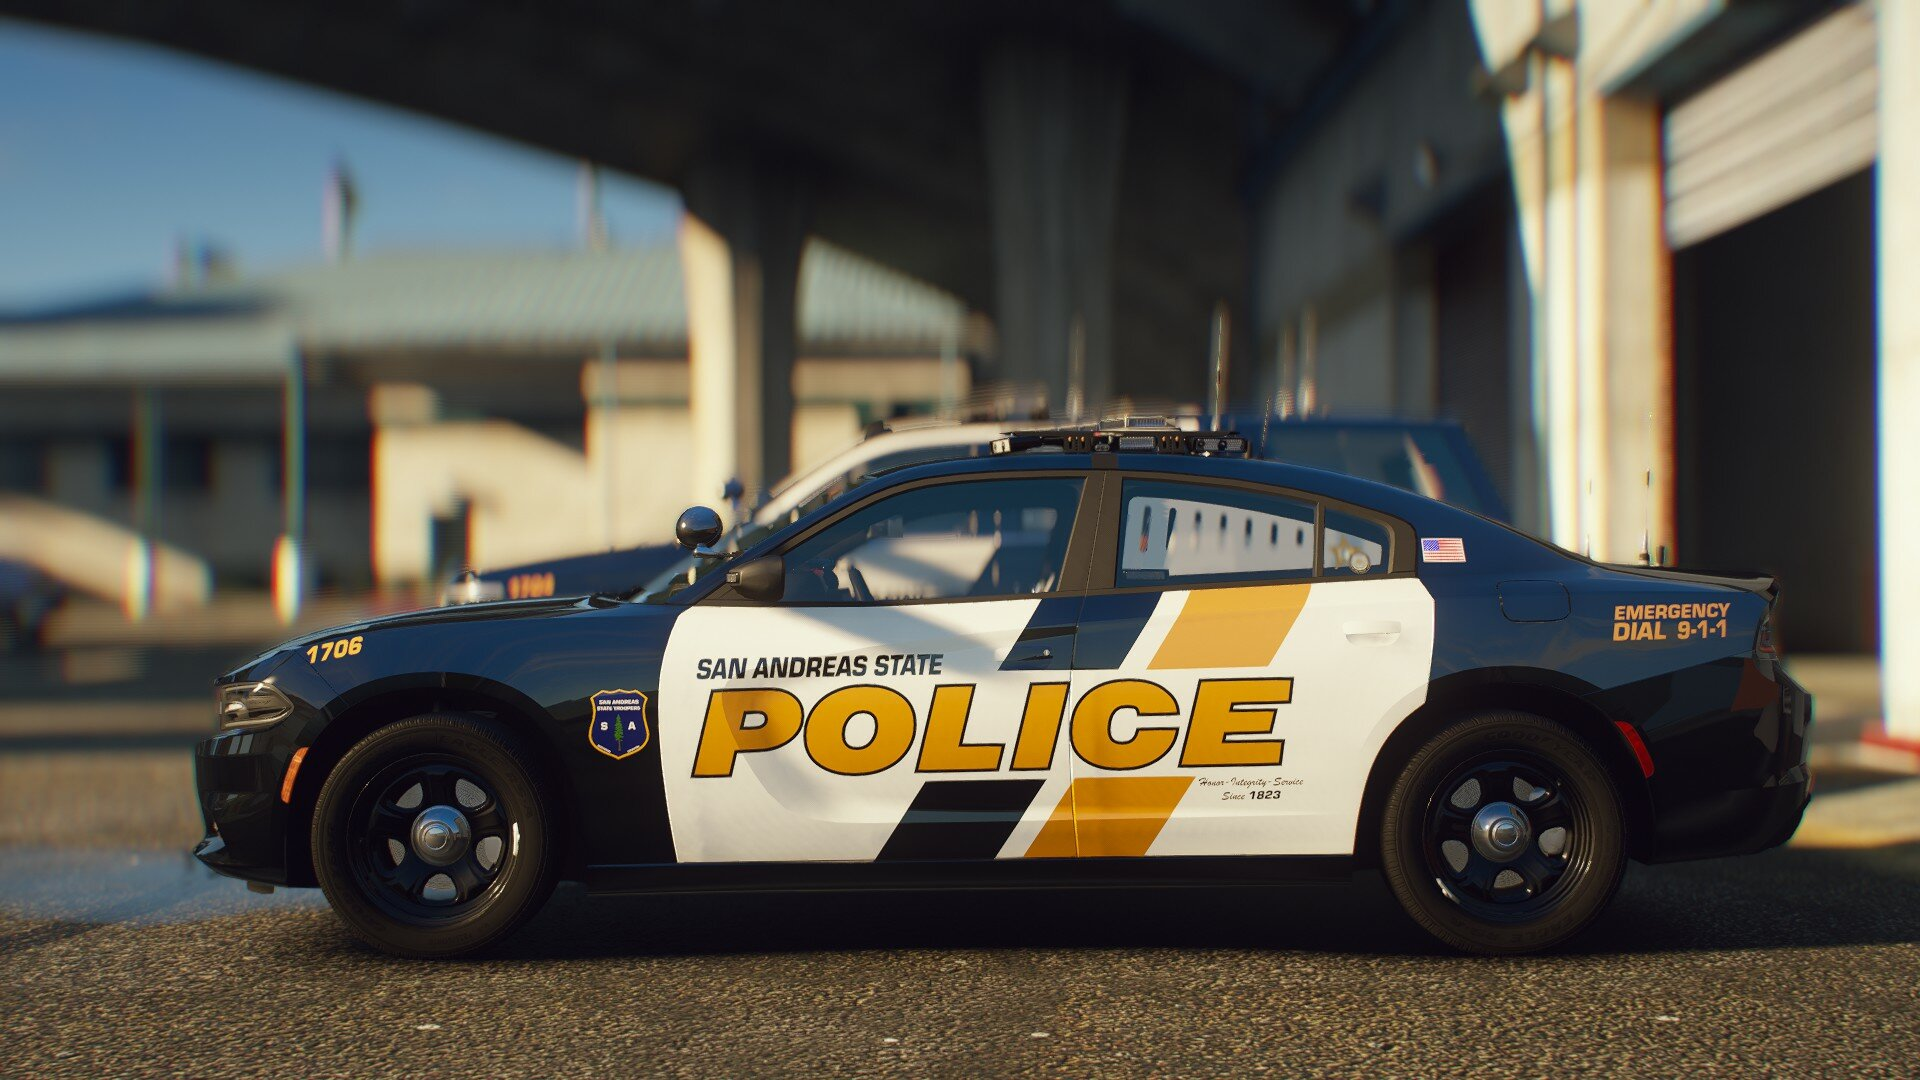 San Andreas State Police texture pack